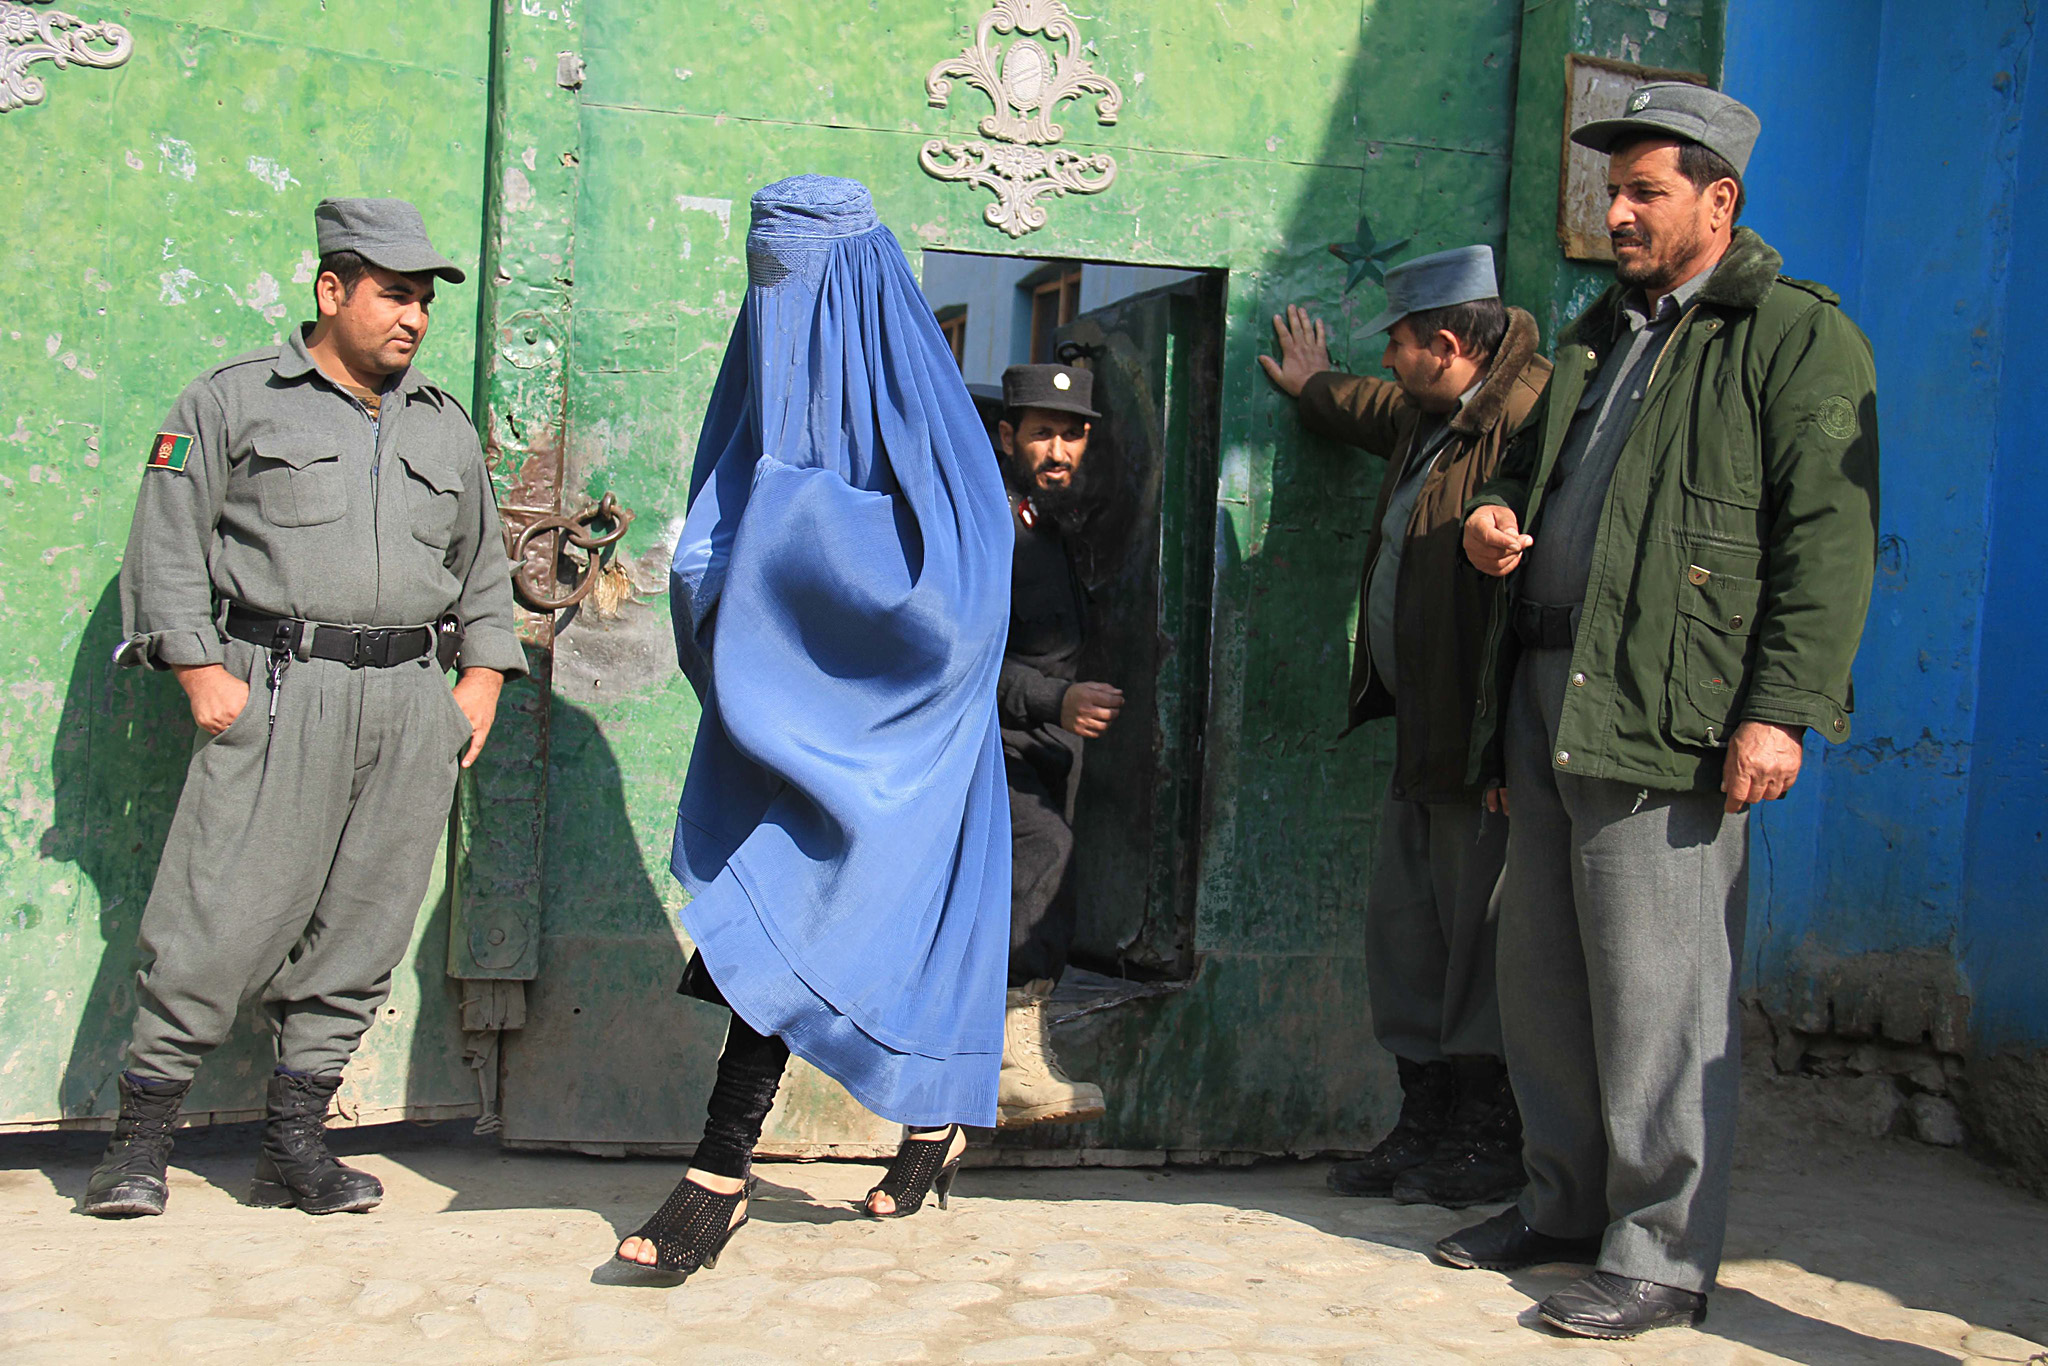 Prisoners release in Jalalabad...epa04560579 Afghan prisoners leave jail following their release by the orders of Afghan President Ashraf Ghani, in Jalalabad, Afghanistan, 15 January 2015. Afghan President ordered some 27 prisoners including 9 women with less than a year to serve to be released in honor of Prophet Muhammad's birthday.  EPA/GHULAMULLAH HABIBI